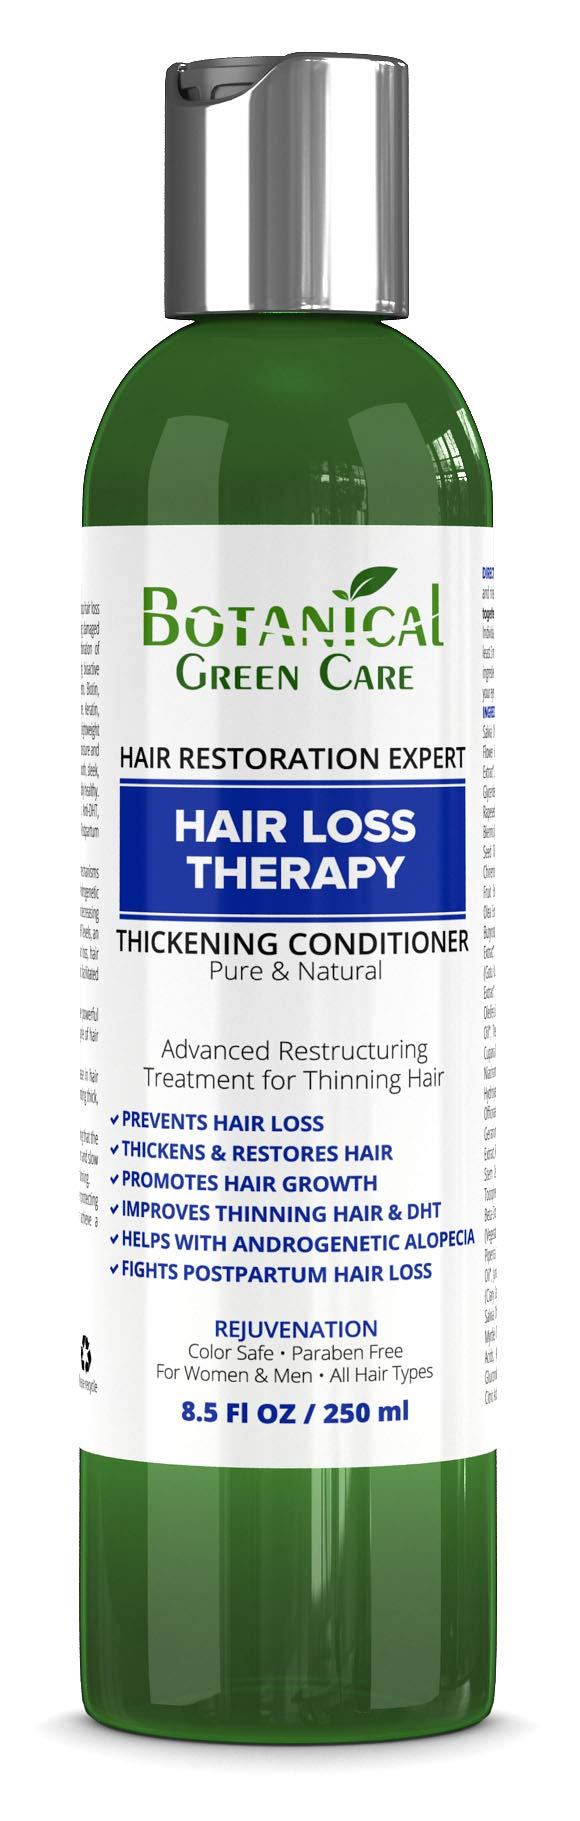 Hair Loss Therapy Hair Growth Anti-Hair Loss CONDITIONER. Alopecia Prevention and DHT Blocker. Doctor Developed. NEW 2018 FORMULA!